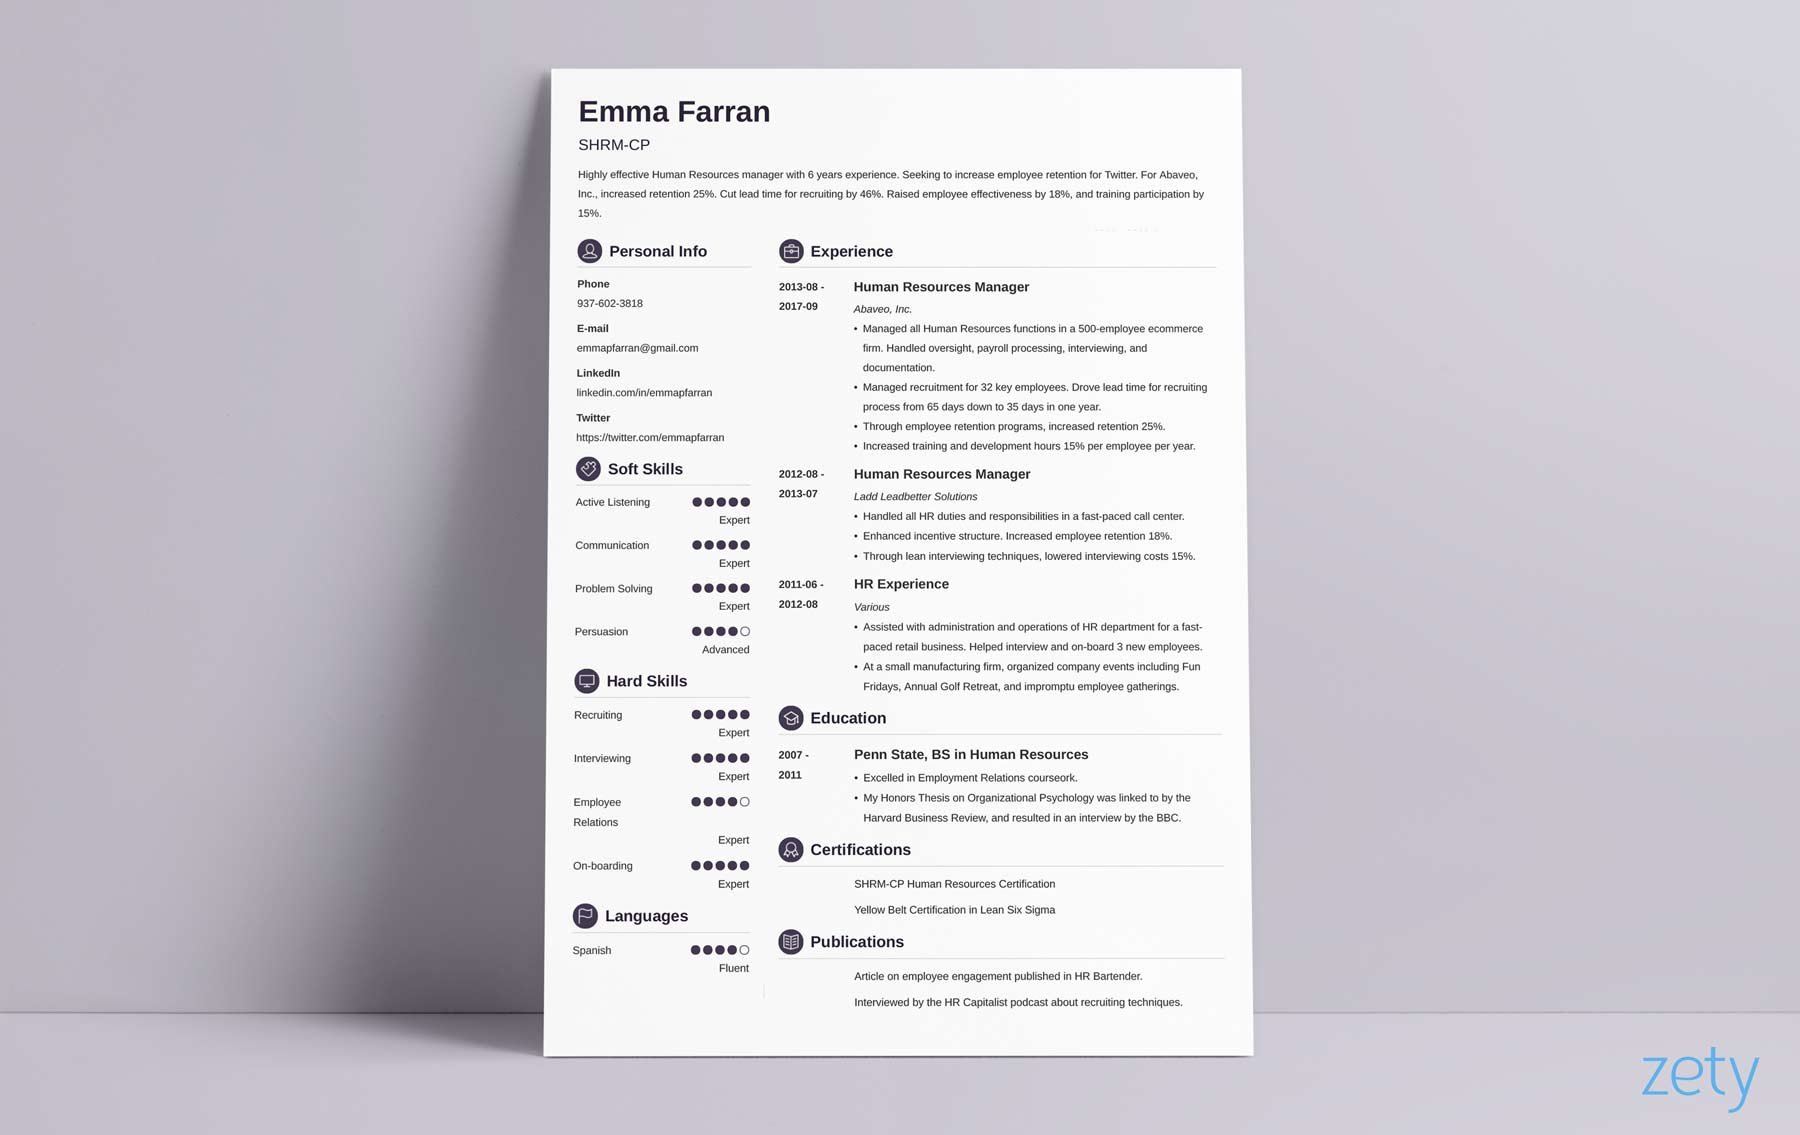 resume Best Resume Images best resume templates 15 examples to download use right away template with section headers that stand out